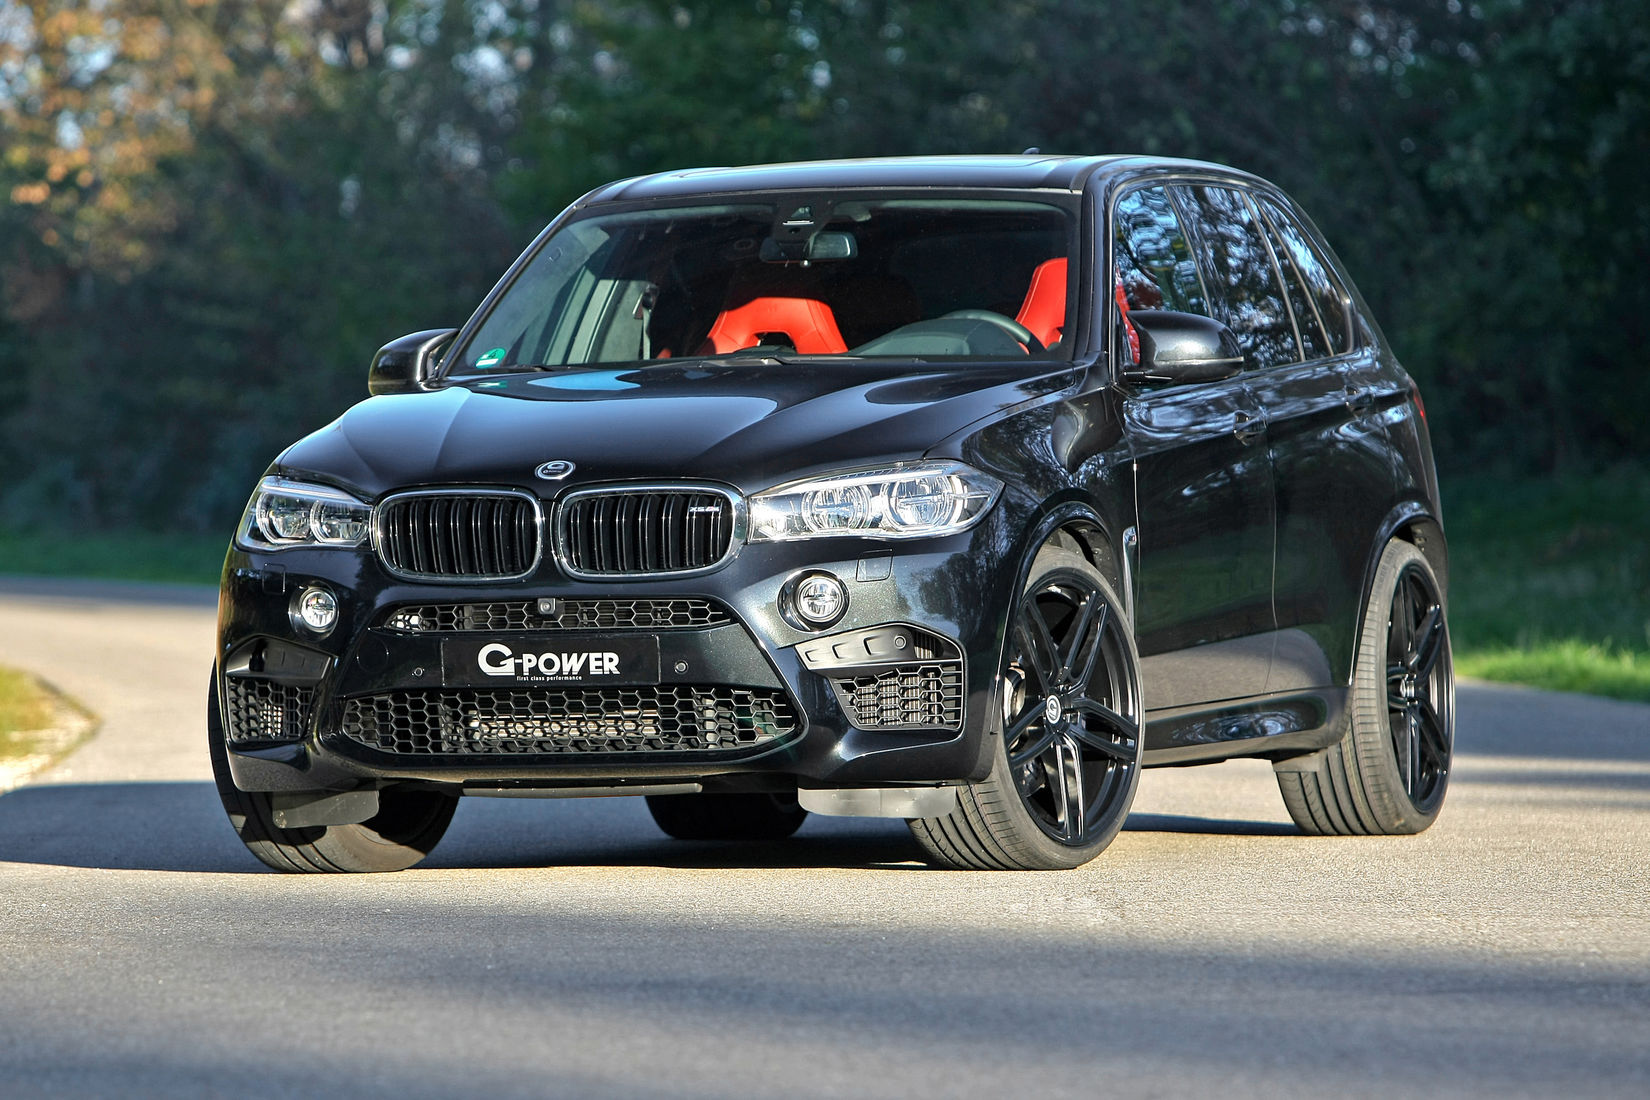 Bmw X5 M By G Power Produces700 Hp